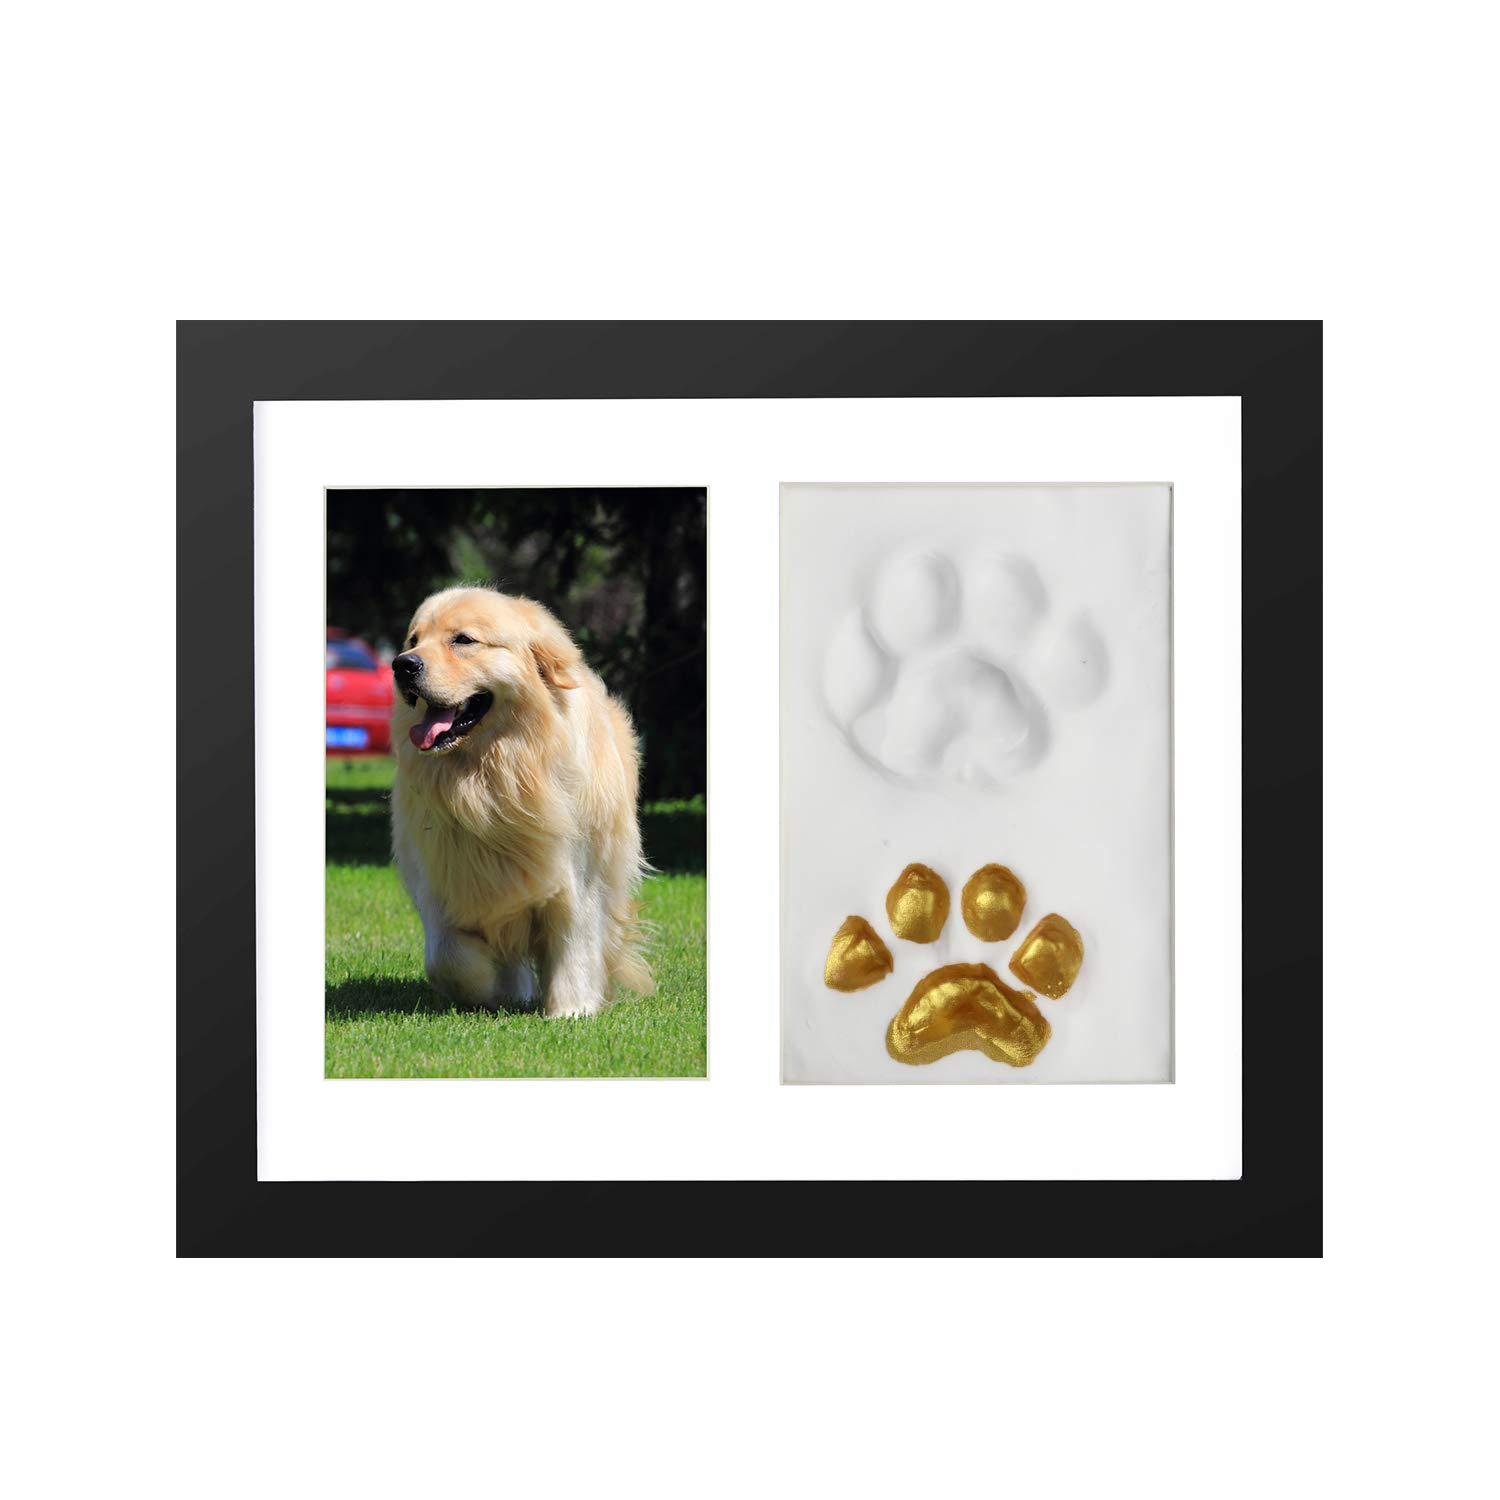 ONE WALL Pet Pawprint Keepsake Kit, 4x6 Inch Pet Memorial Picture Frame Paw Print Imprint Kit with Clay for Dog or Cat, Black